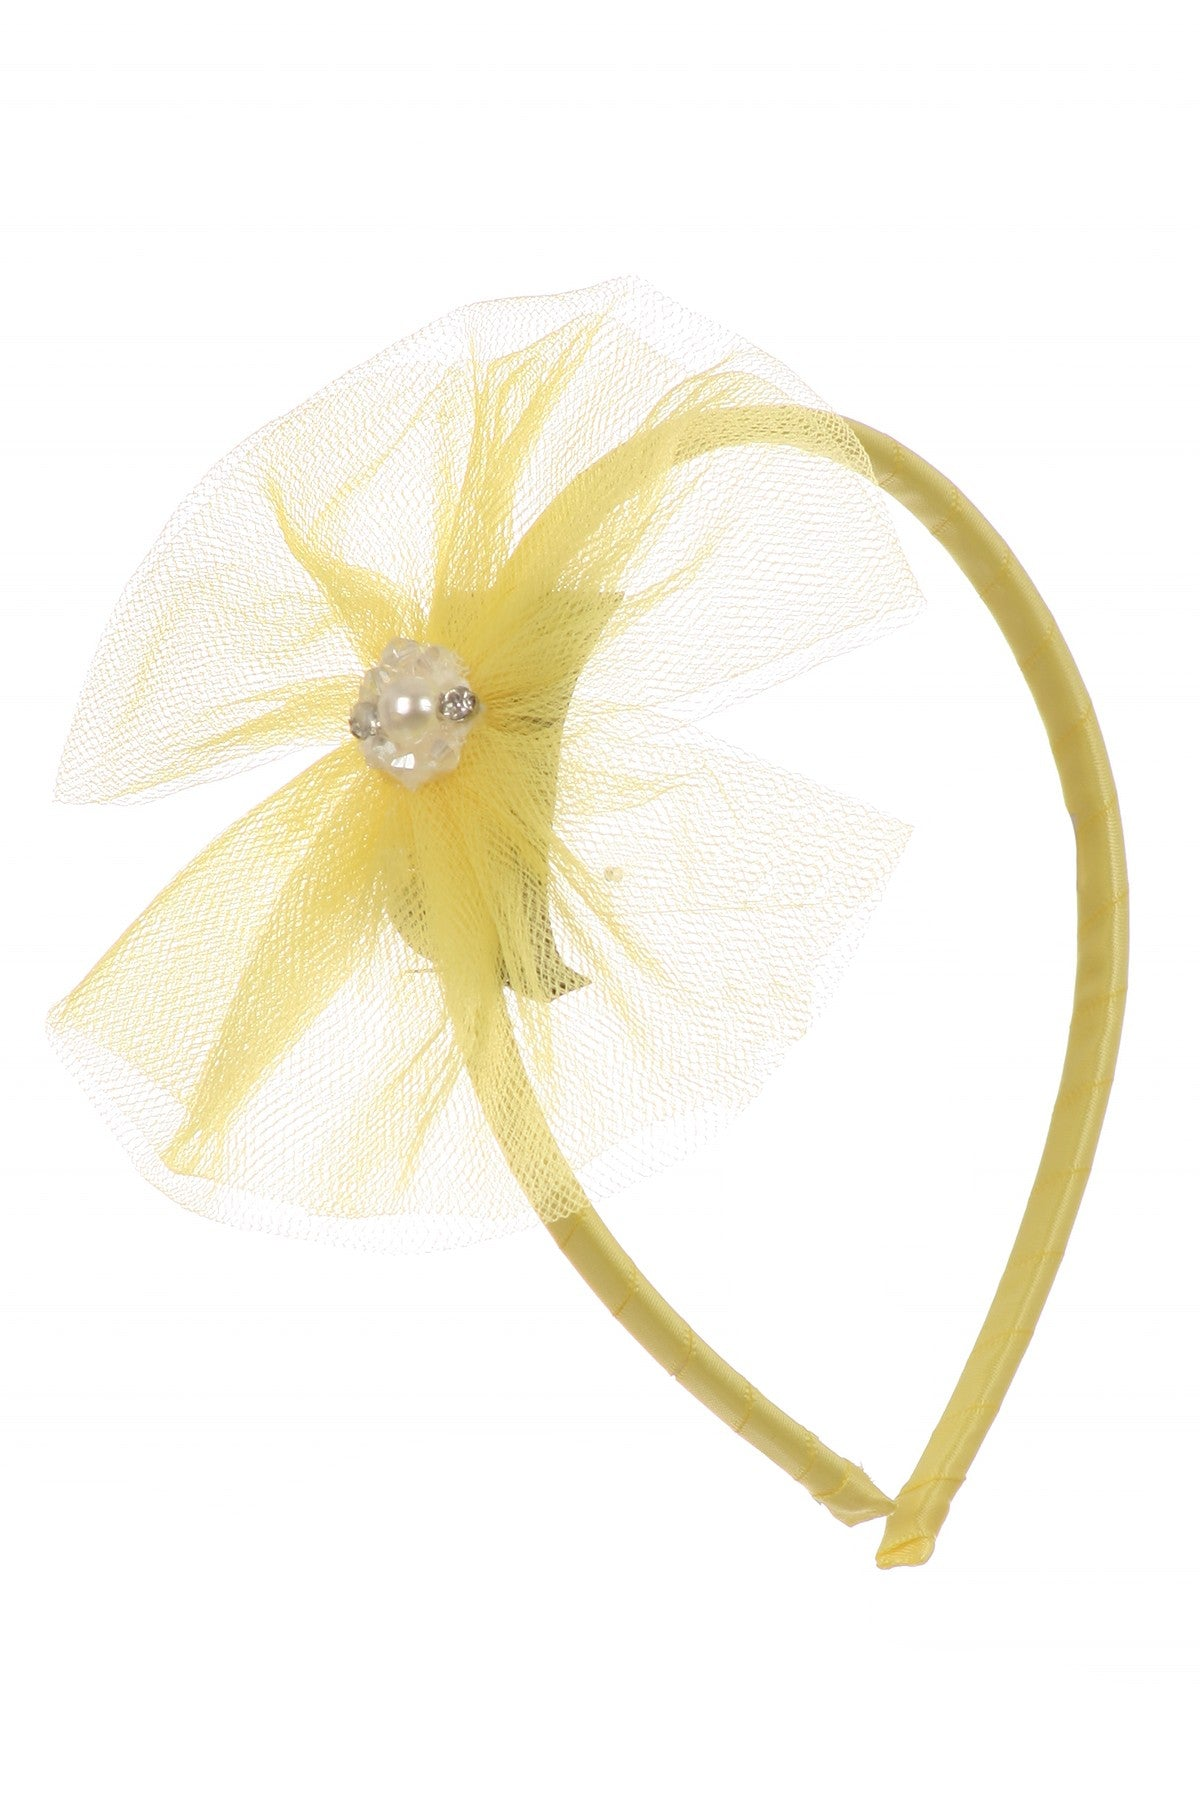 Headband with illusion tulle bow and pearl accent.